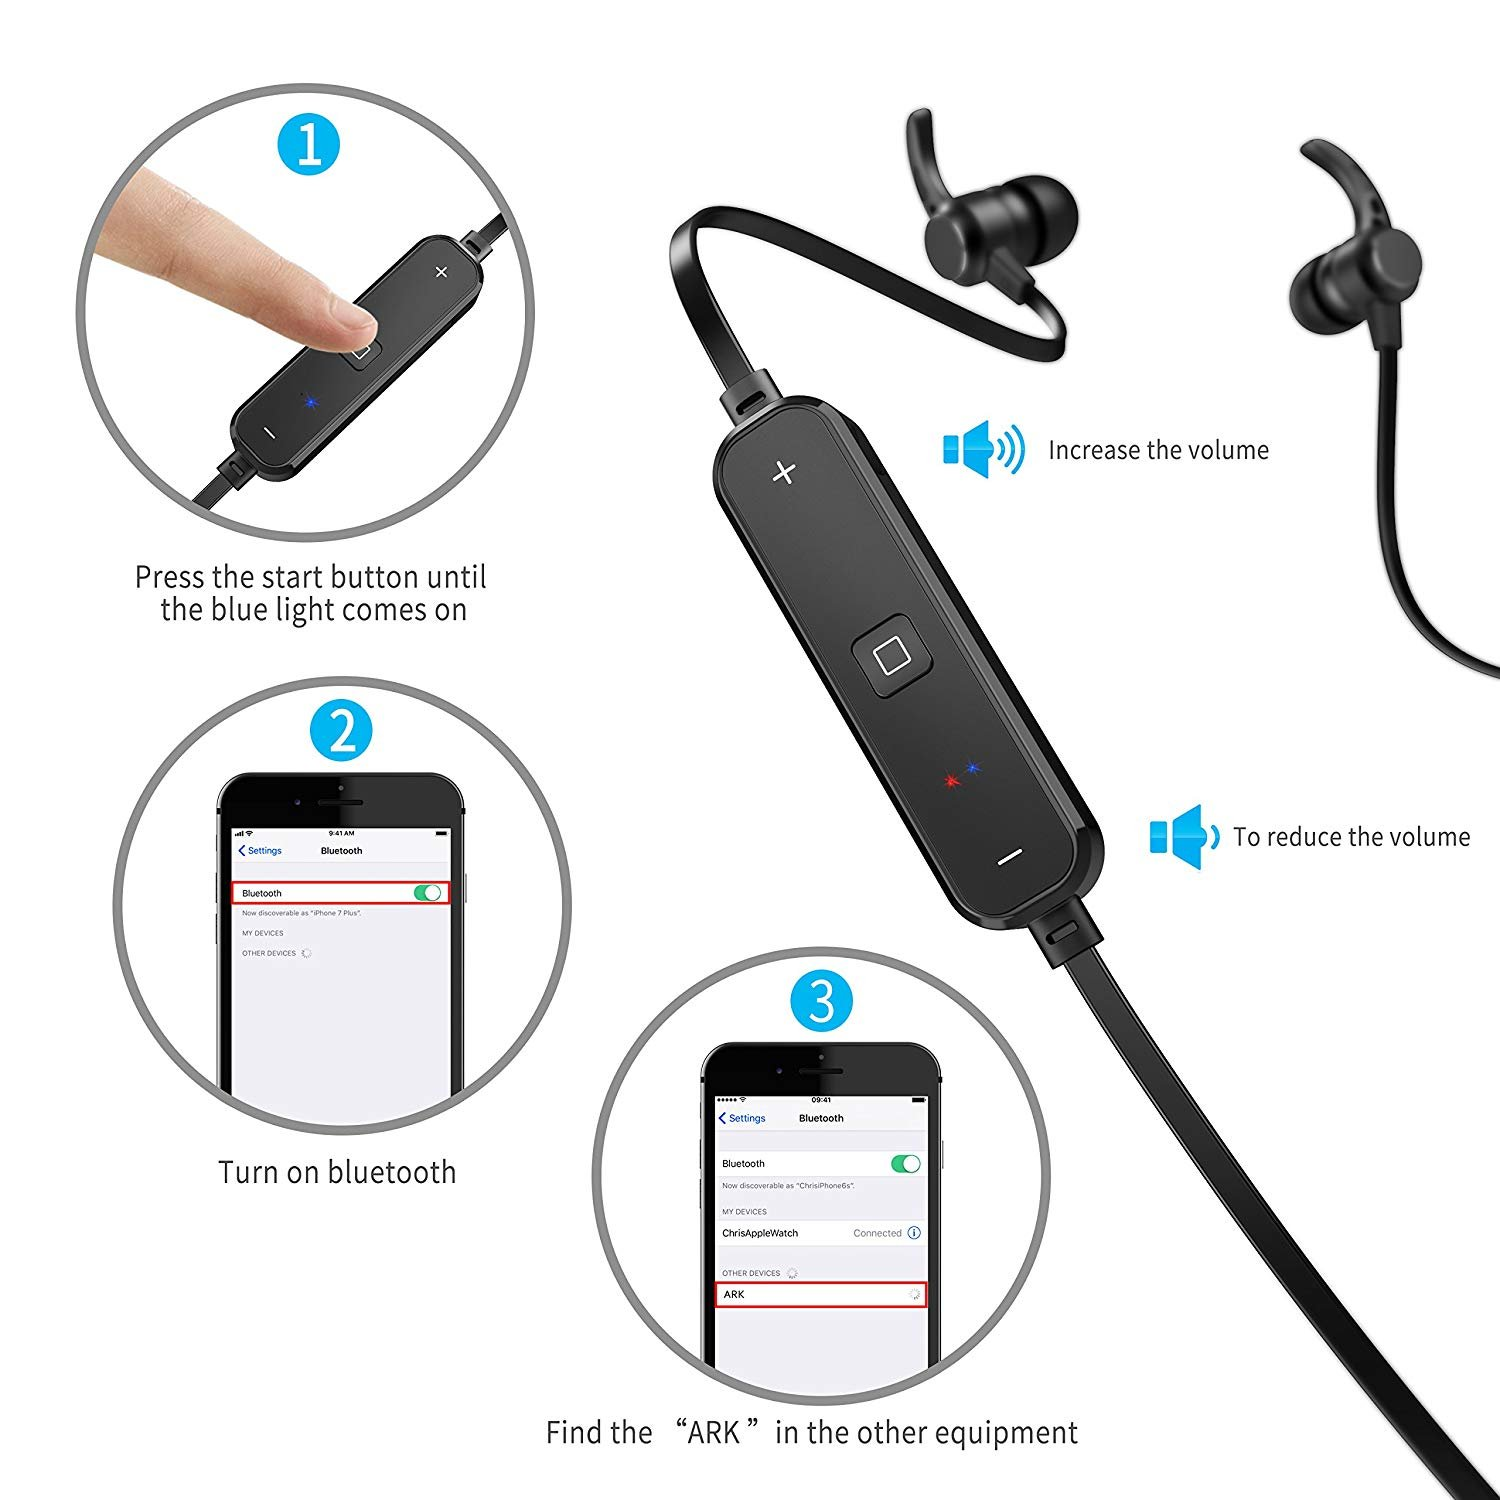 Bluetooth Earbuds, Wireless. Headphones Headsets Stereo in-Ear Earpieces Earphones with Noise Canceling Microphone.6 by SHBGU (Image #2)